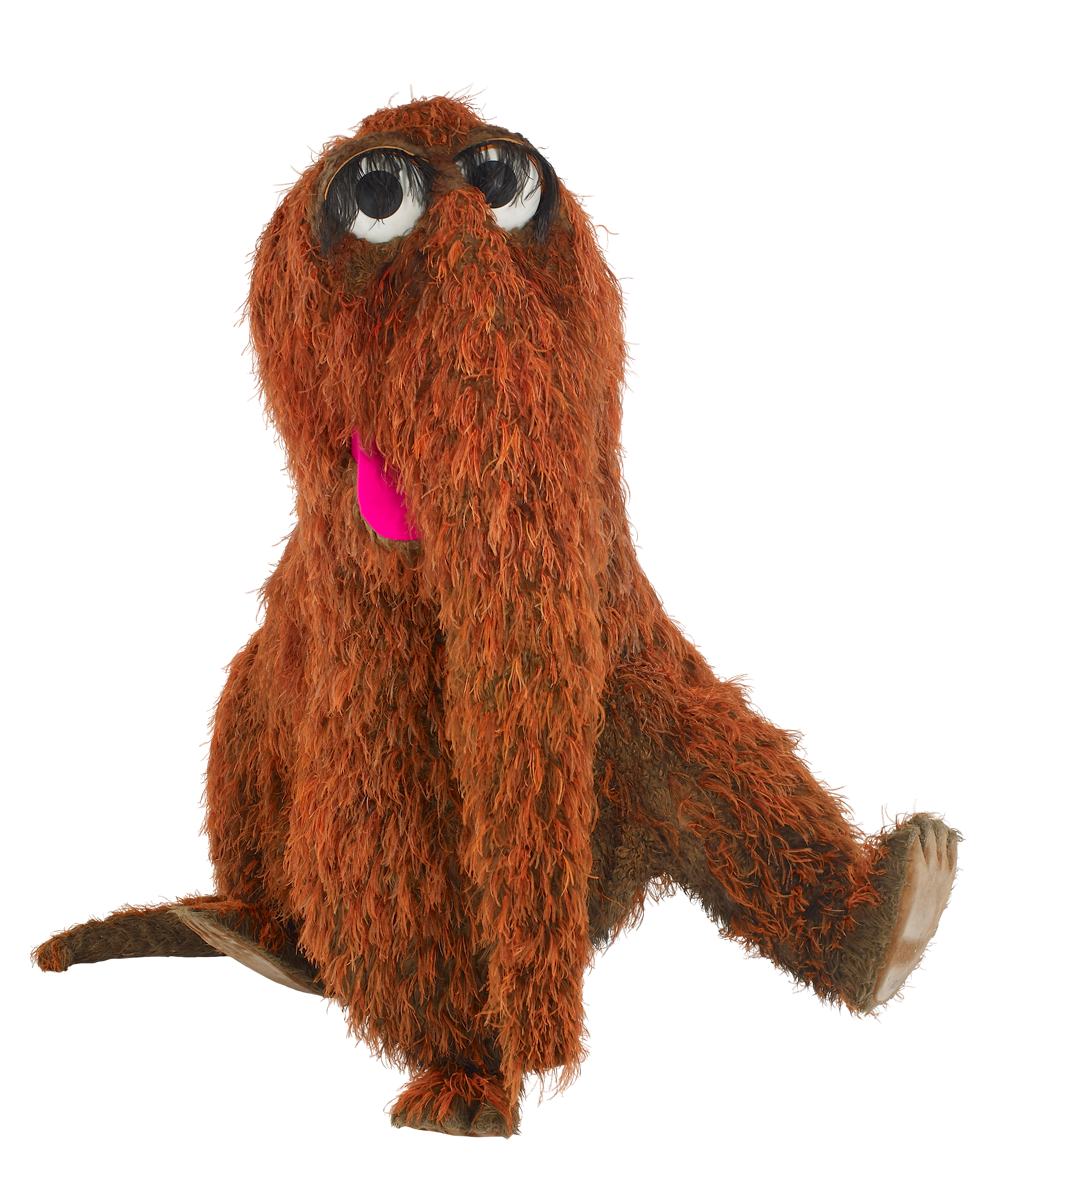 Picture of snuffleupagus